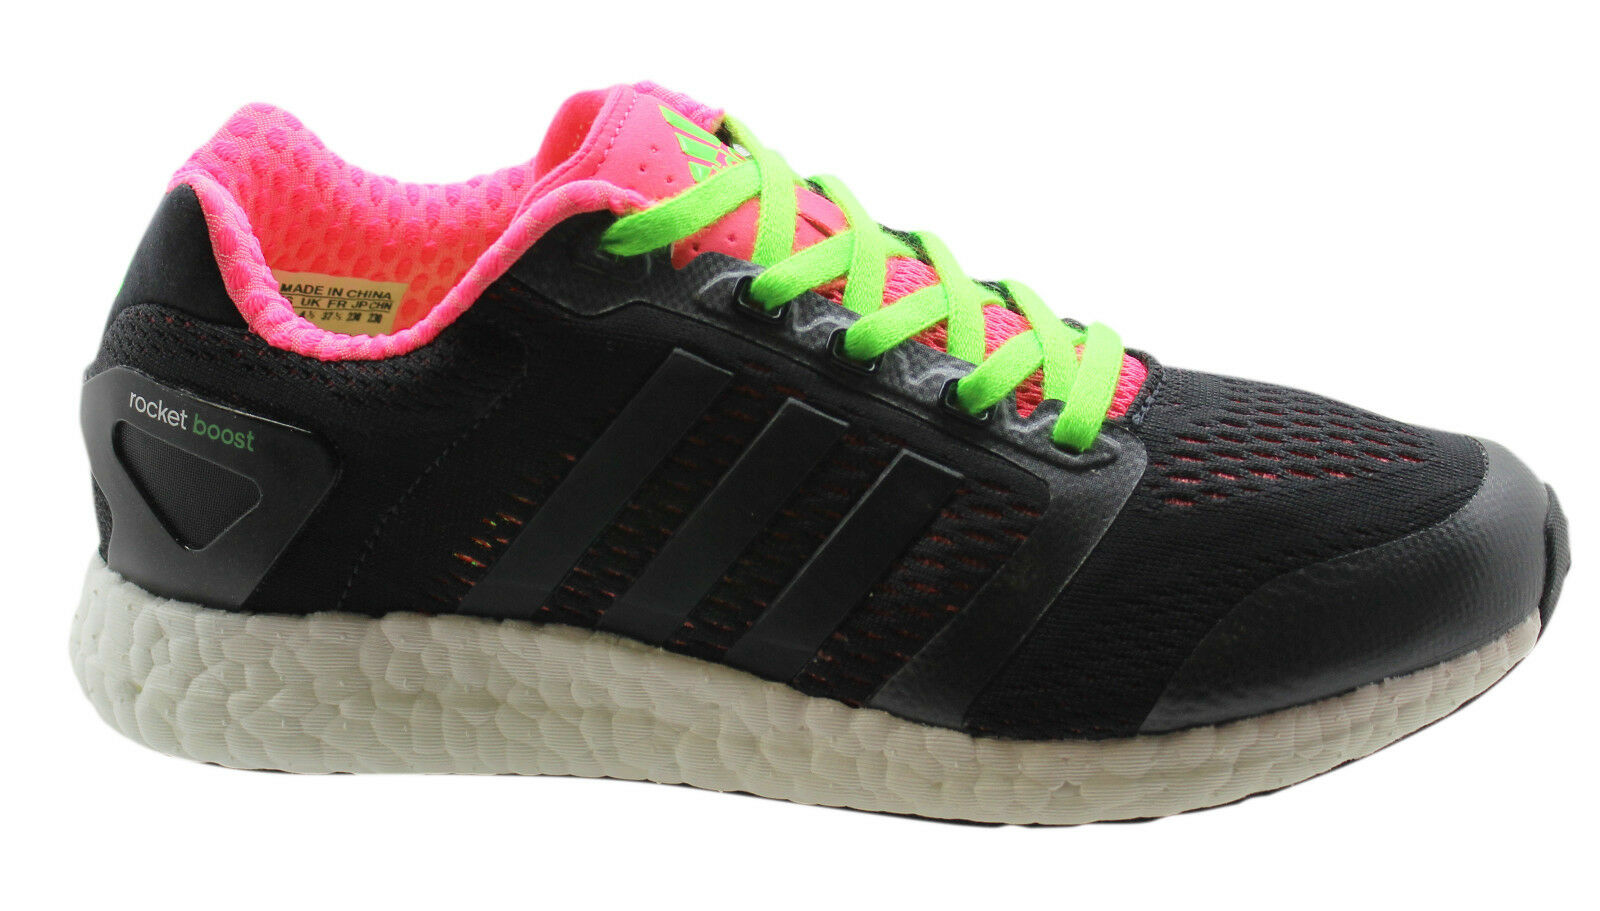 Adidas Climacool Rocket Boost Womens Trainers Running Shoes ...